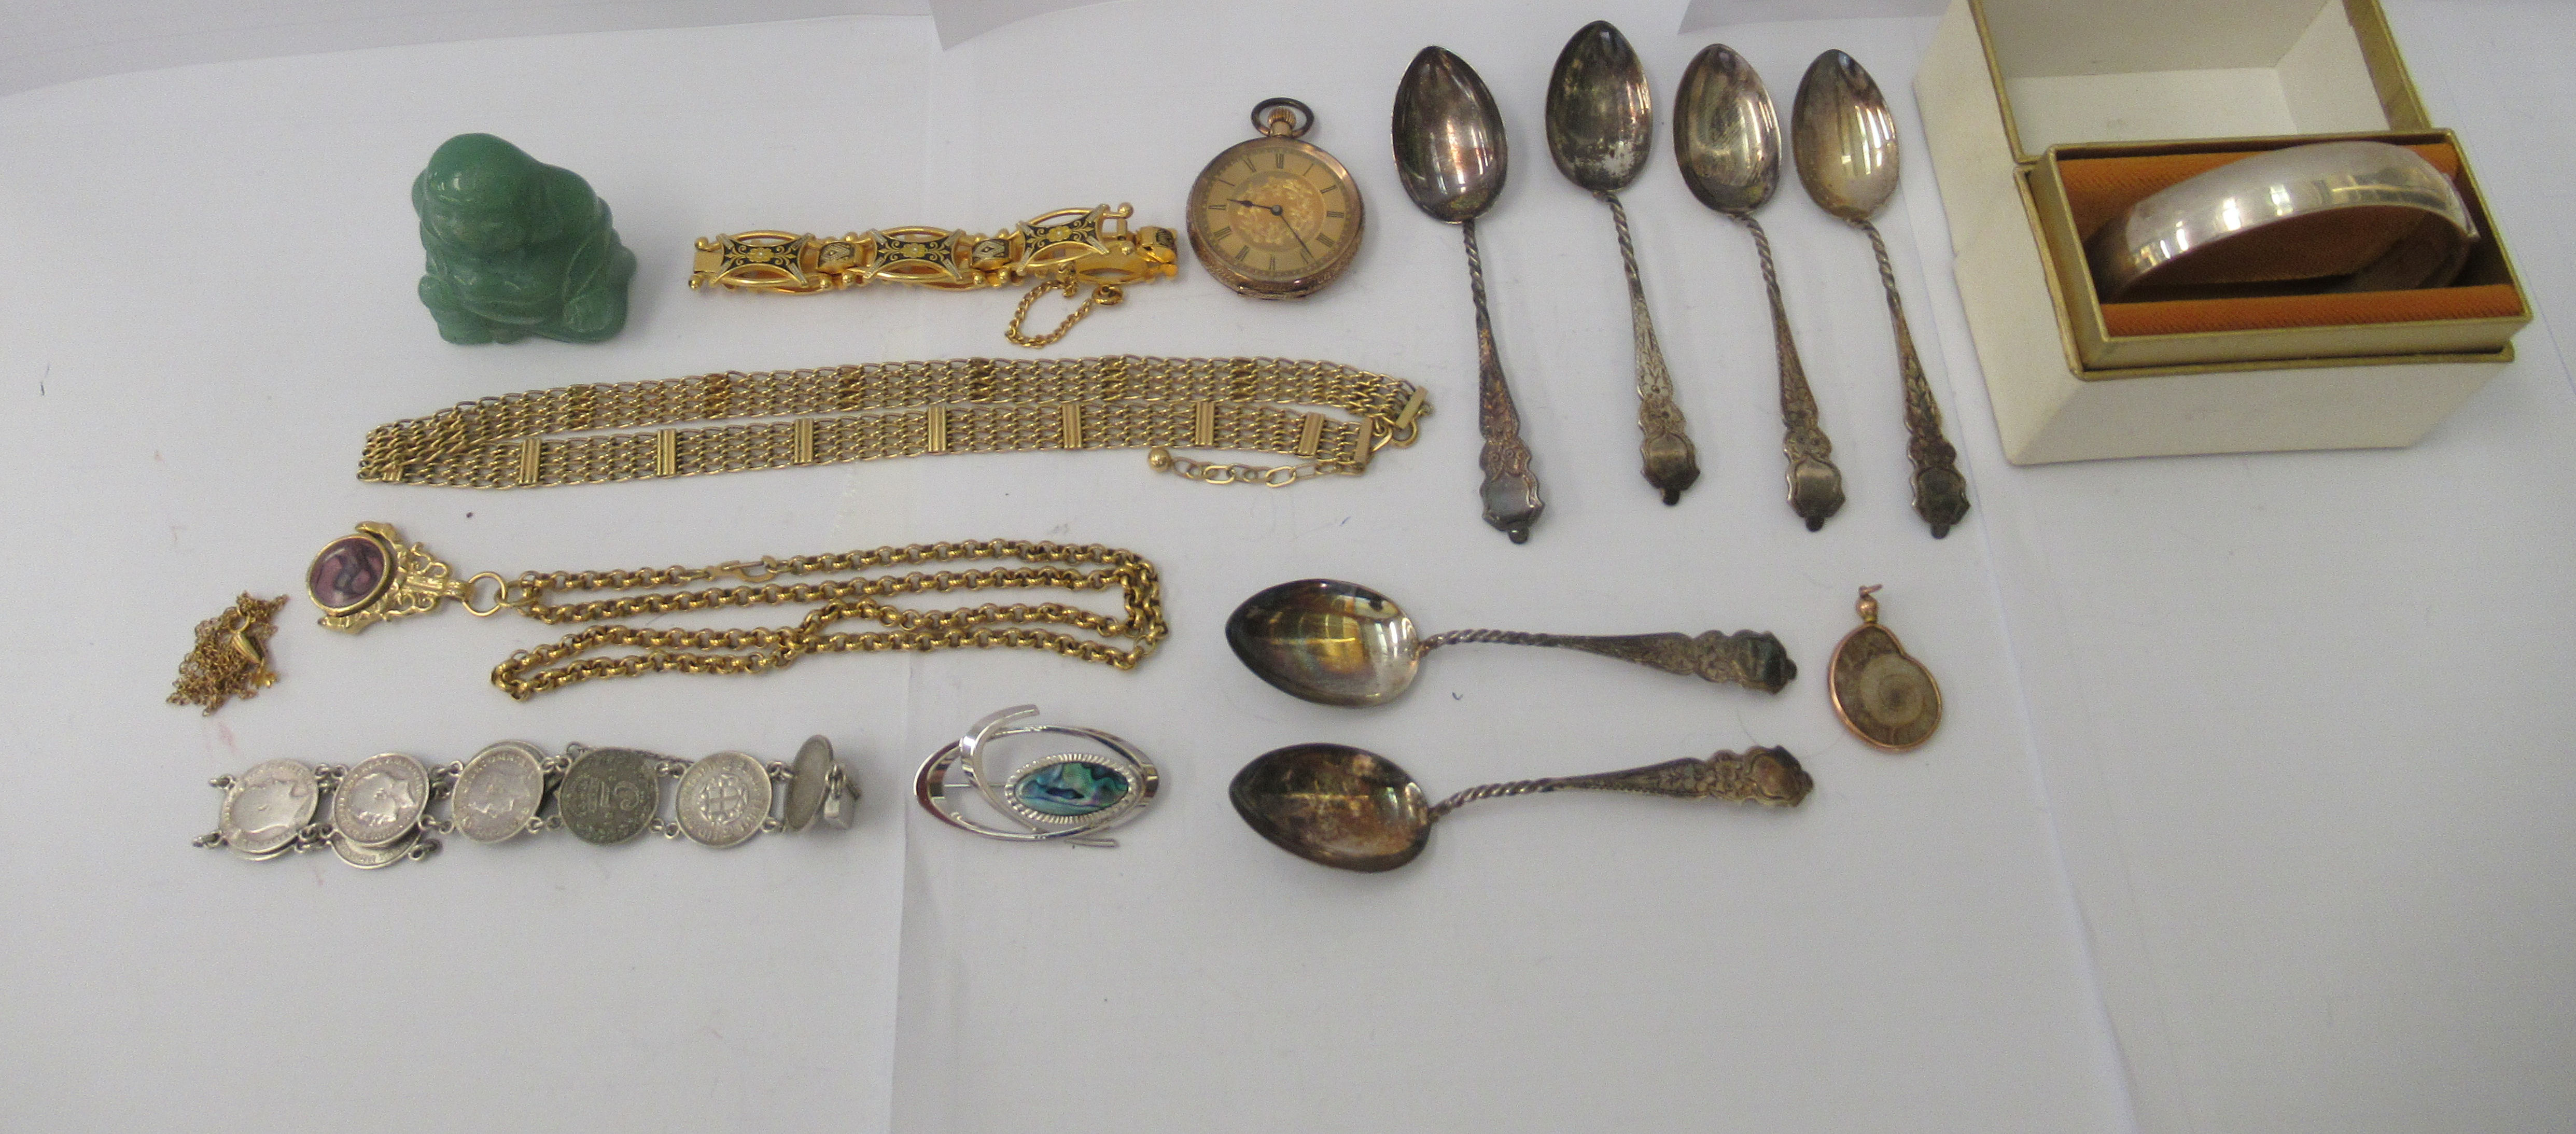 Personal ornament and collectables: to include a silver hinged bangle; and a yellow metal fob watch